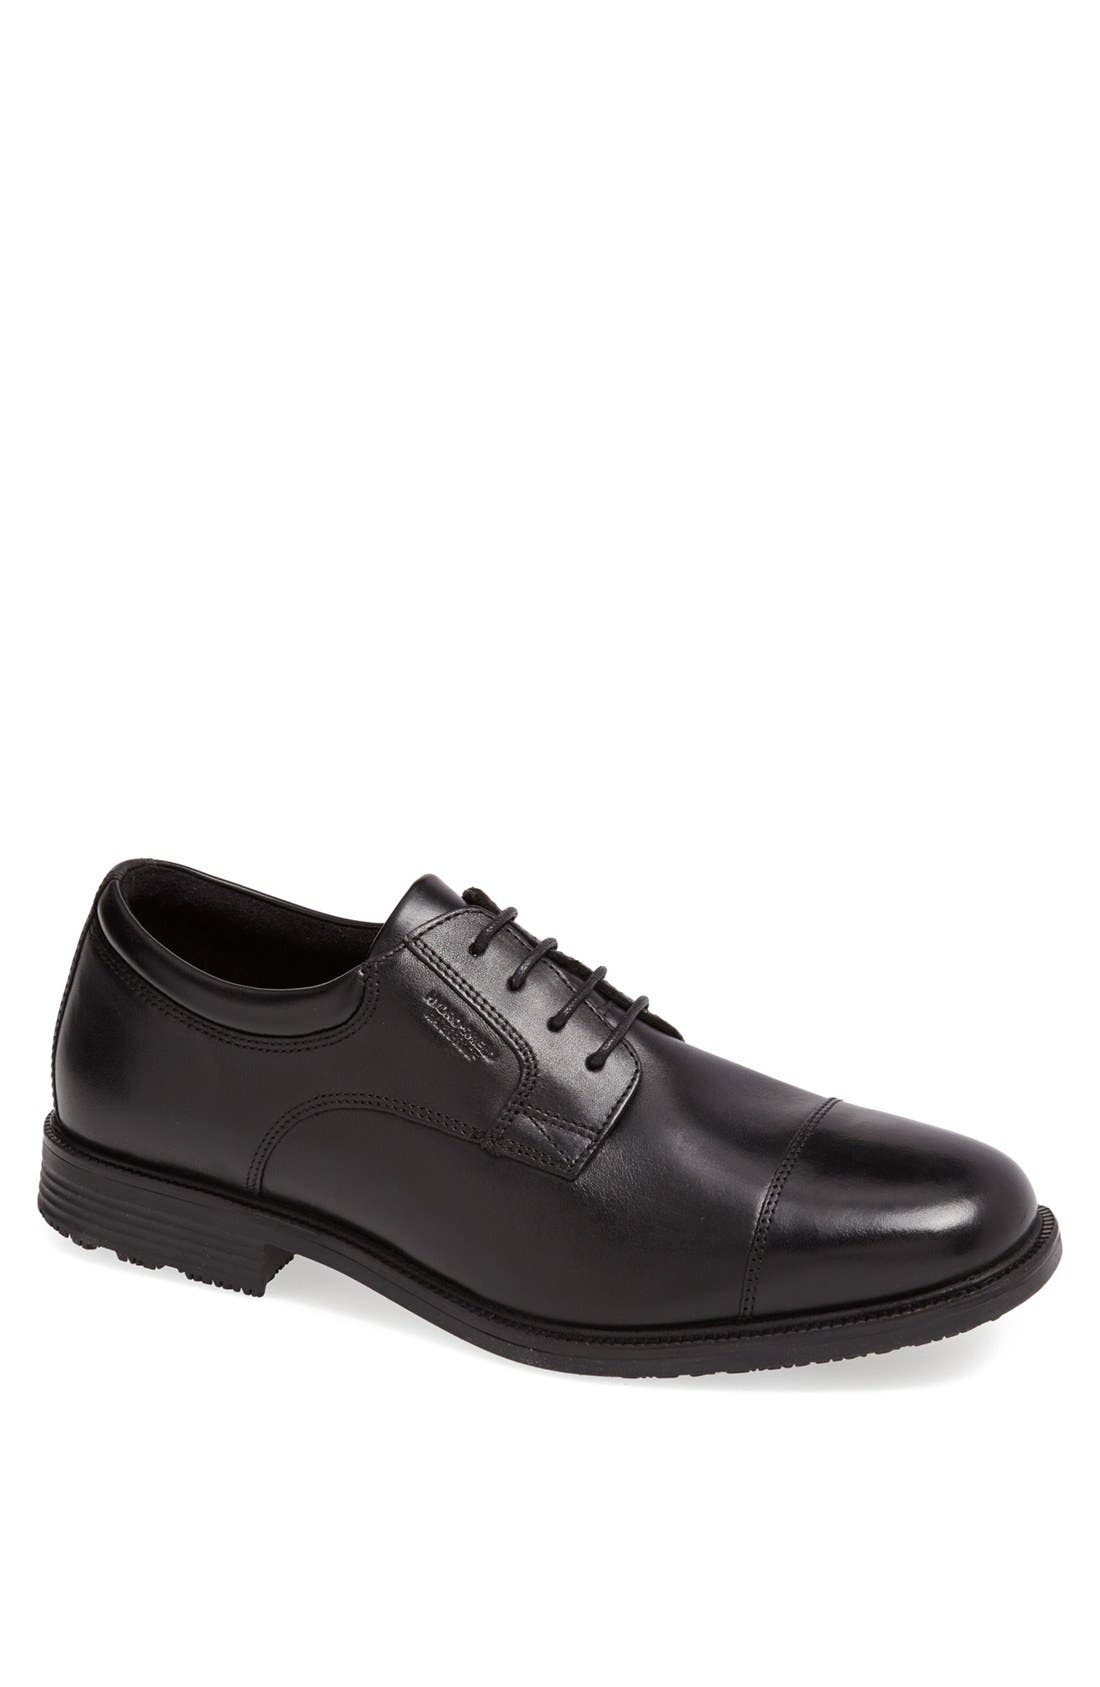 'Essential Details' Waterproof Cap Toe Derby,                         Main,                         color, BLACK